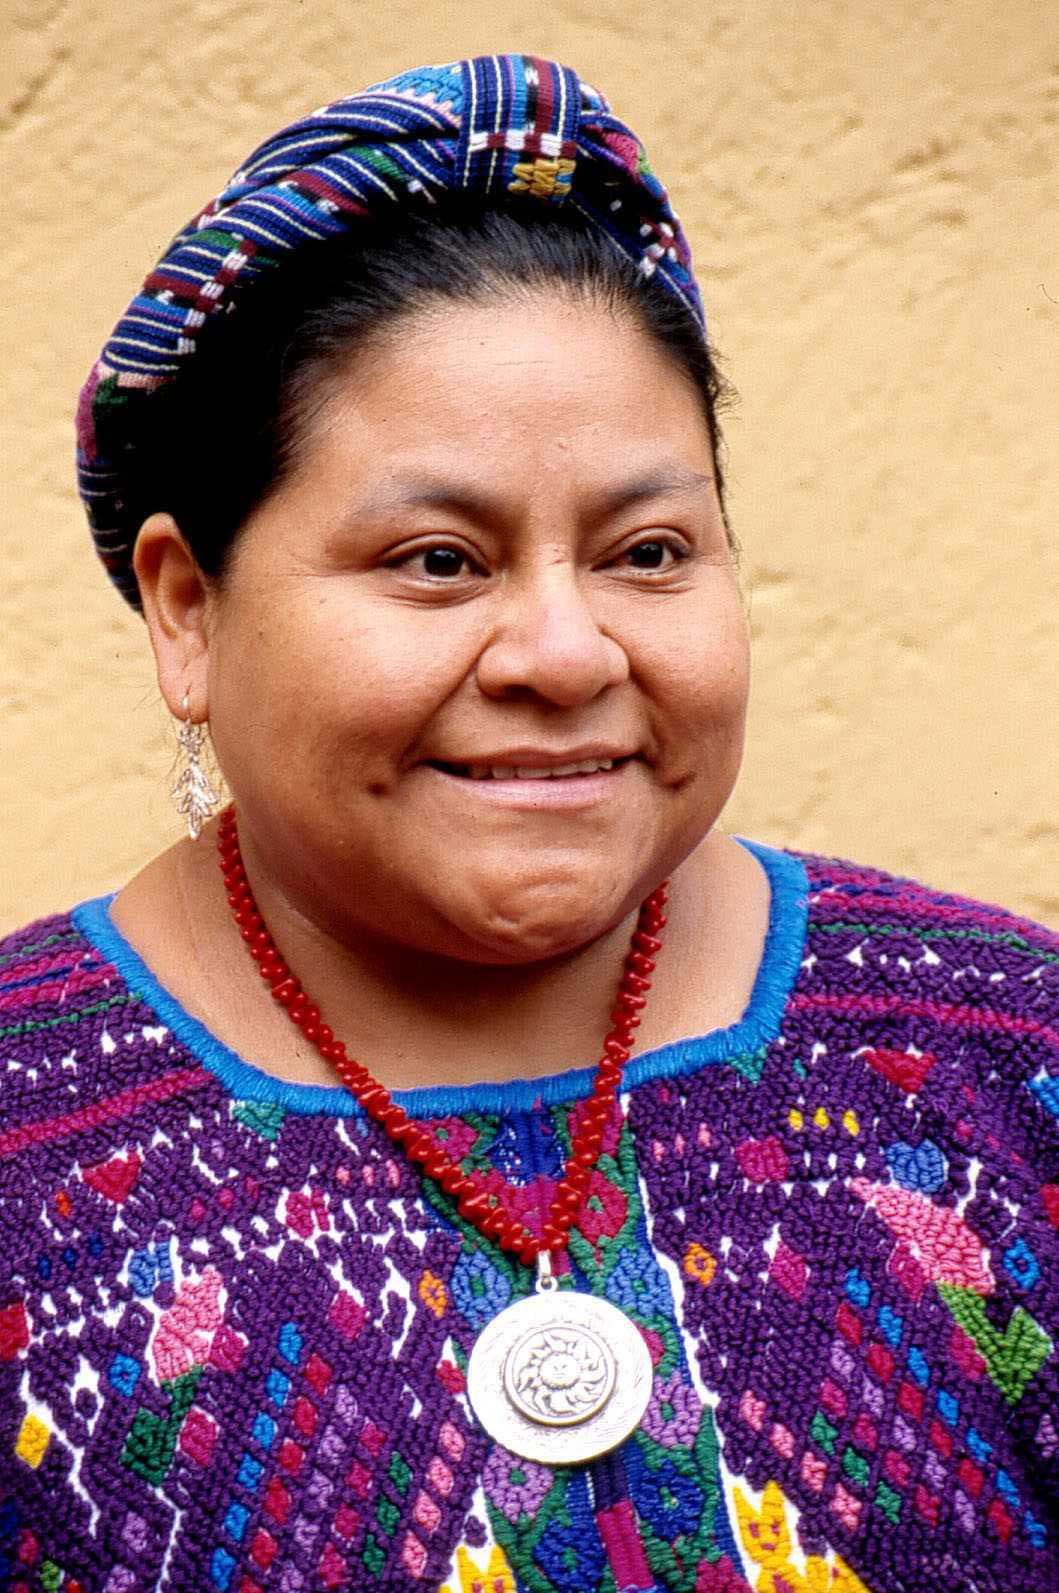 Rigoberta Menchú - Guatemalan indigenous rights and womens rights activist, Nobel Peace Prize recipient